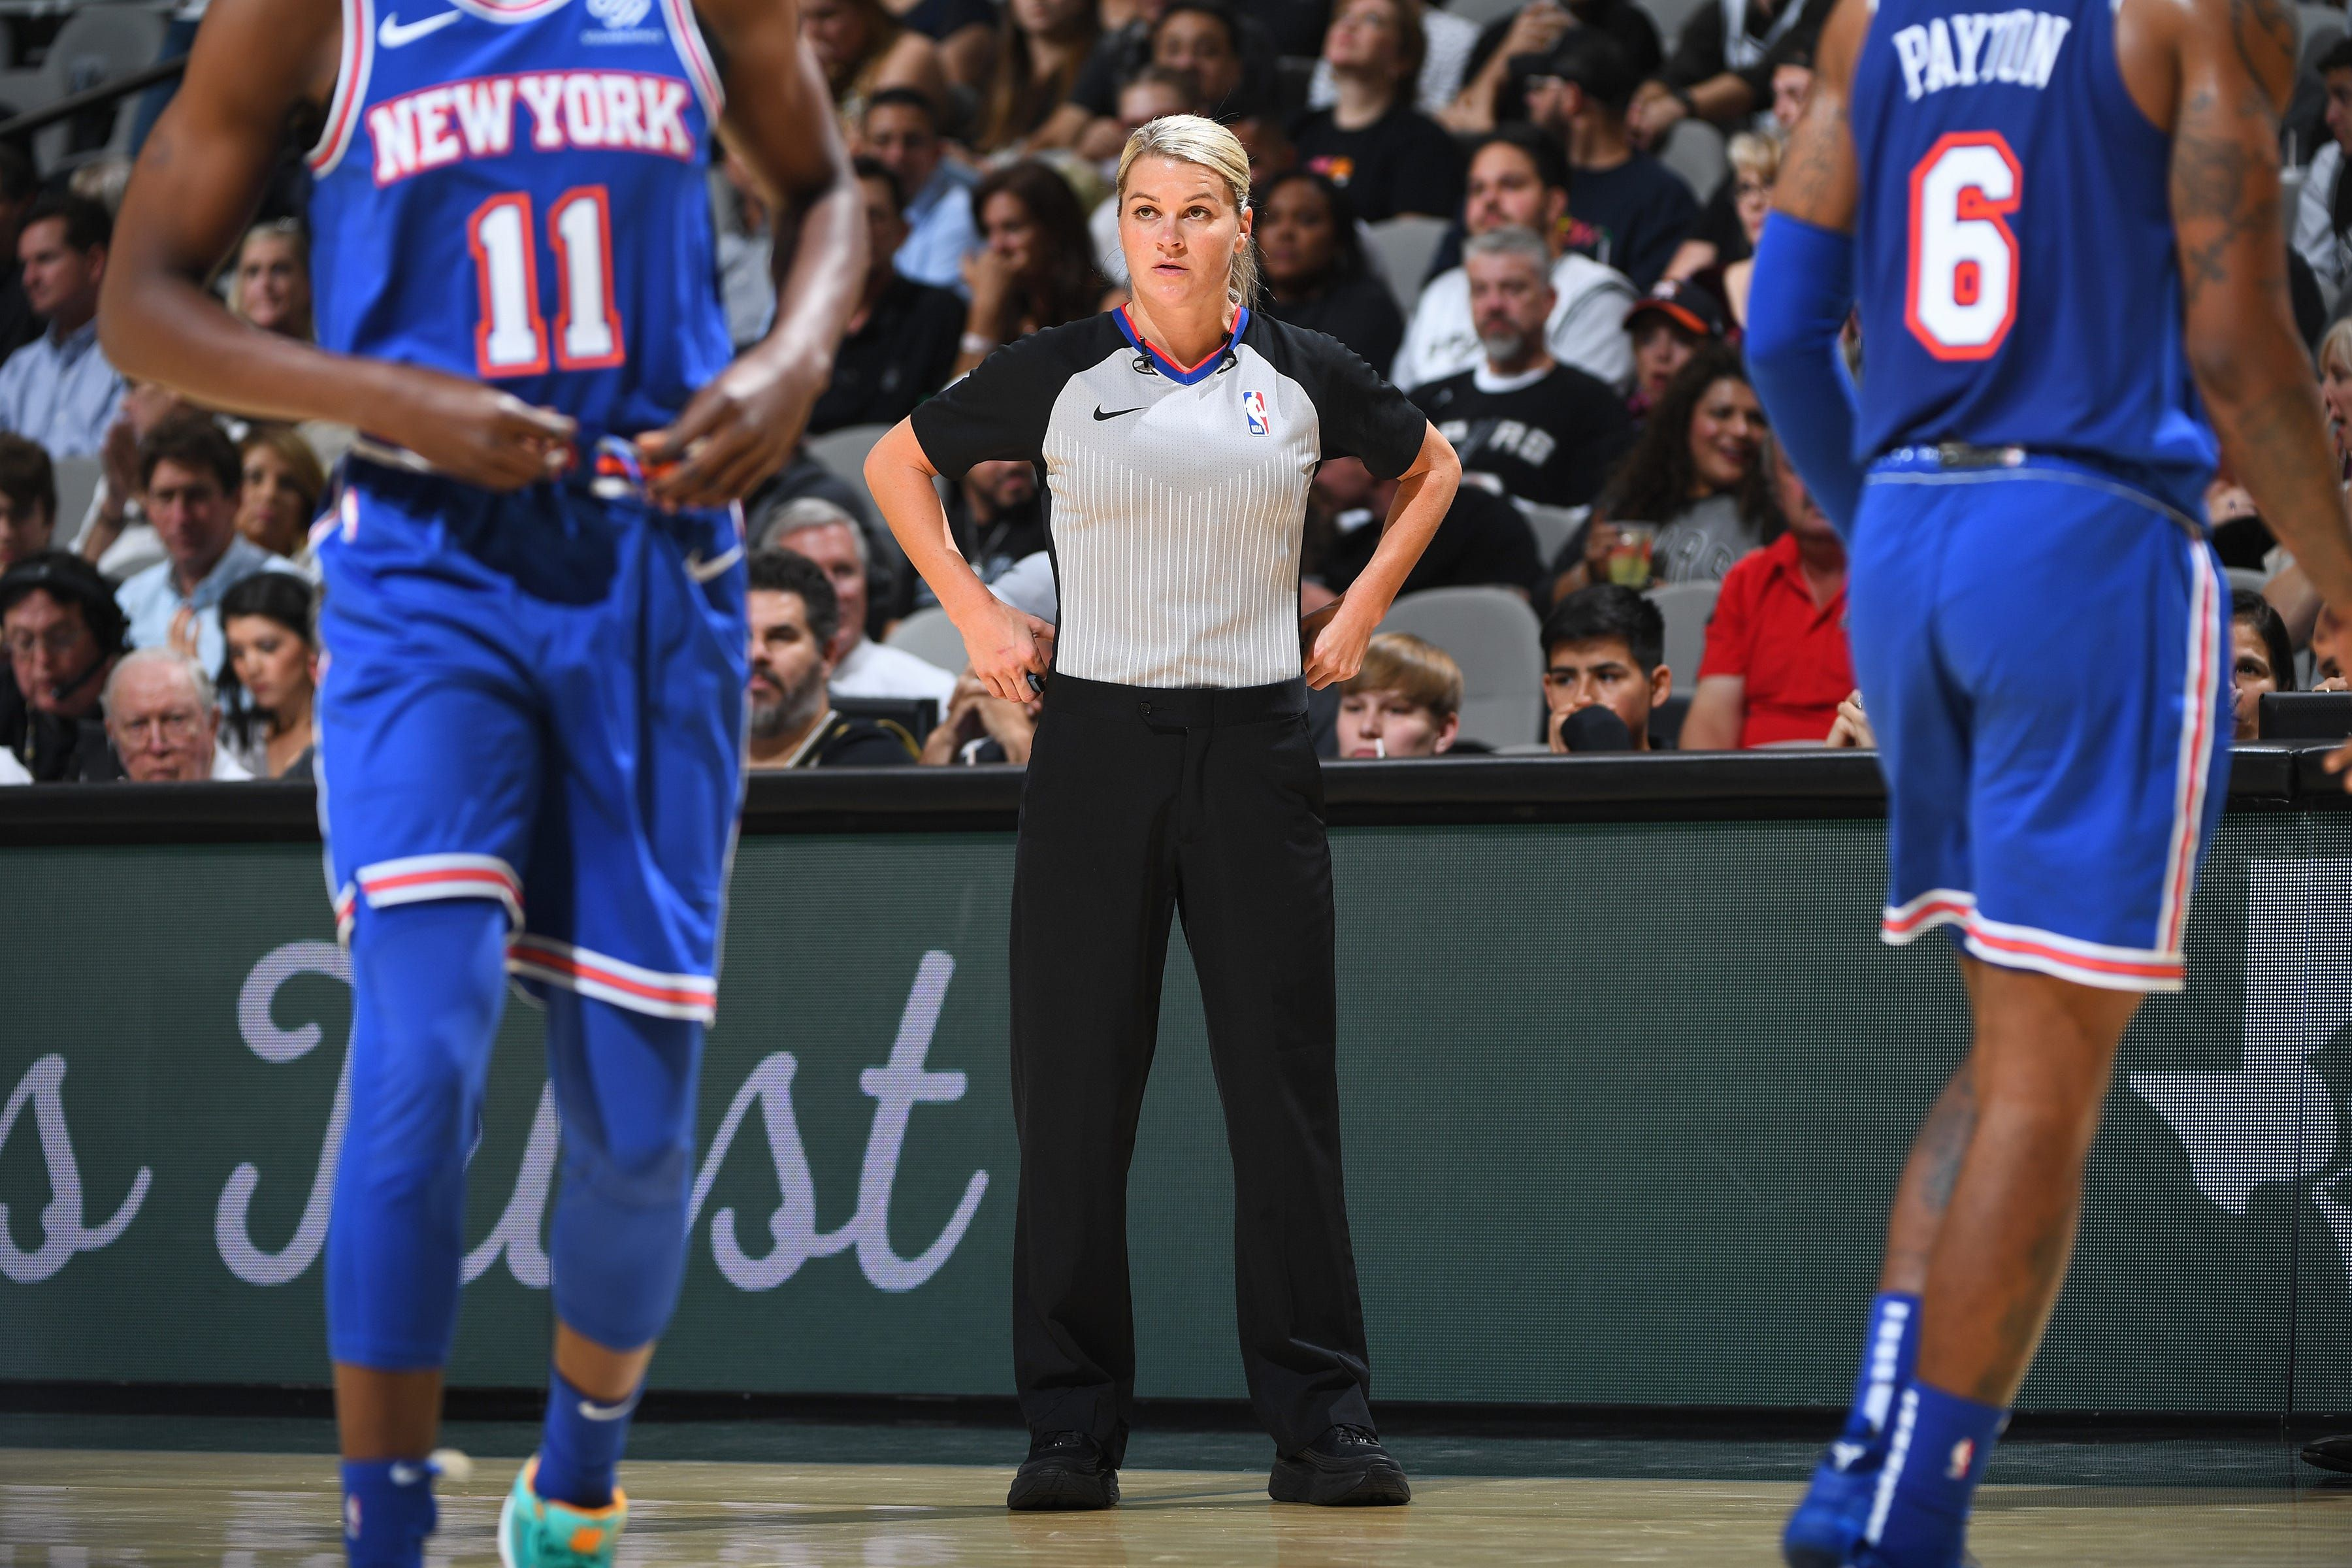 How This Michigan Woman Journeyed From Comerica Park Bartender To Making Calls In The Nba Usa Today Sports Nba New York Knicks